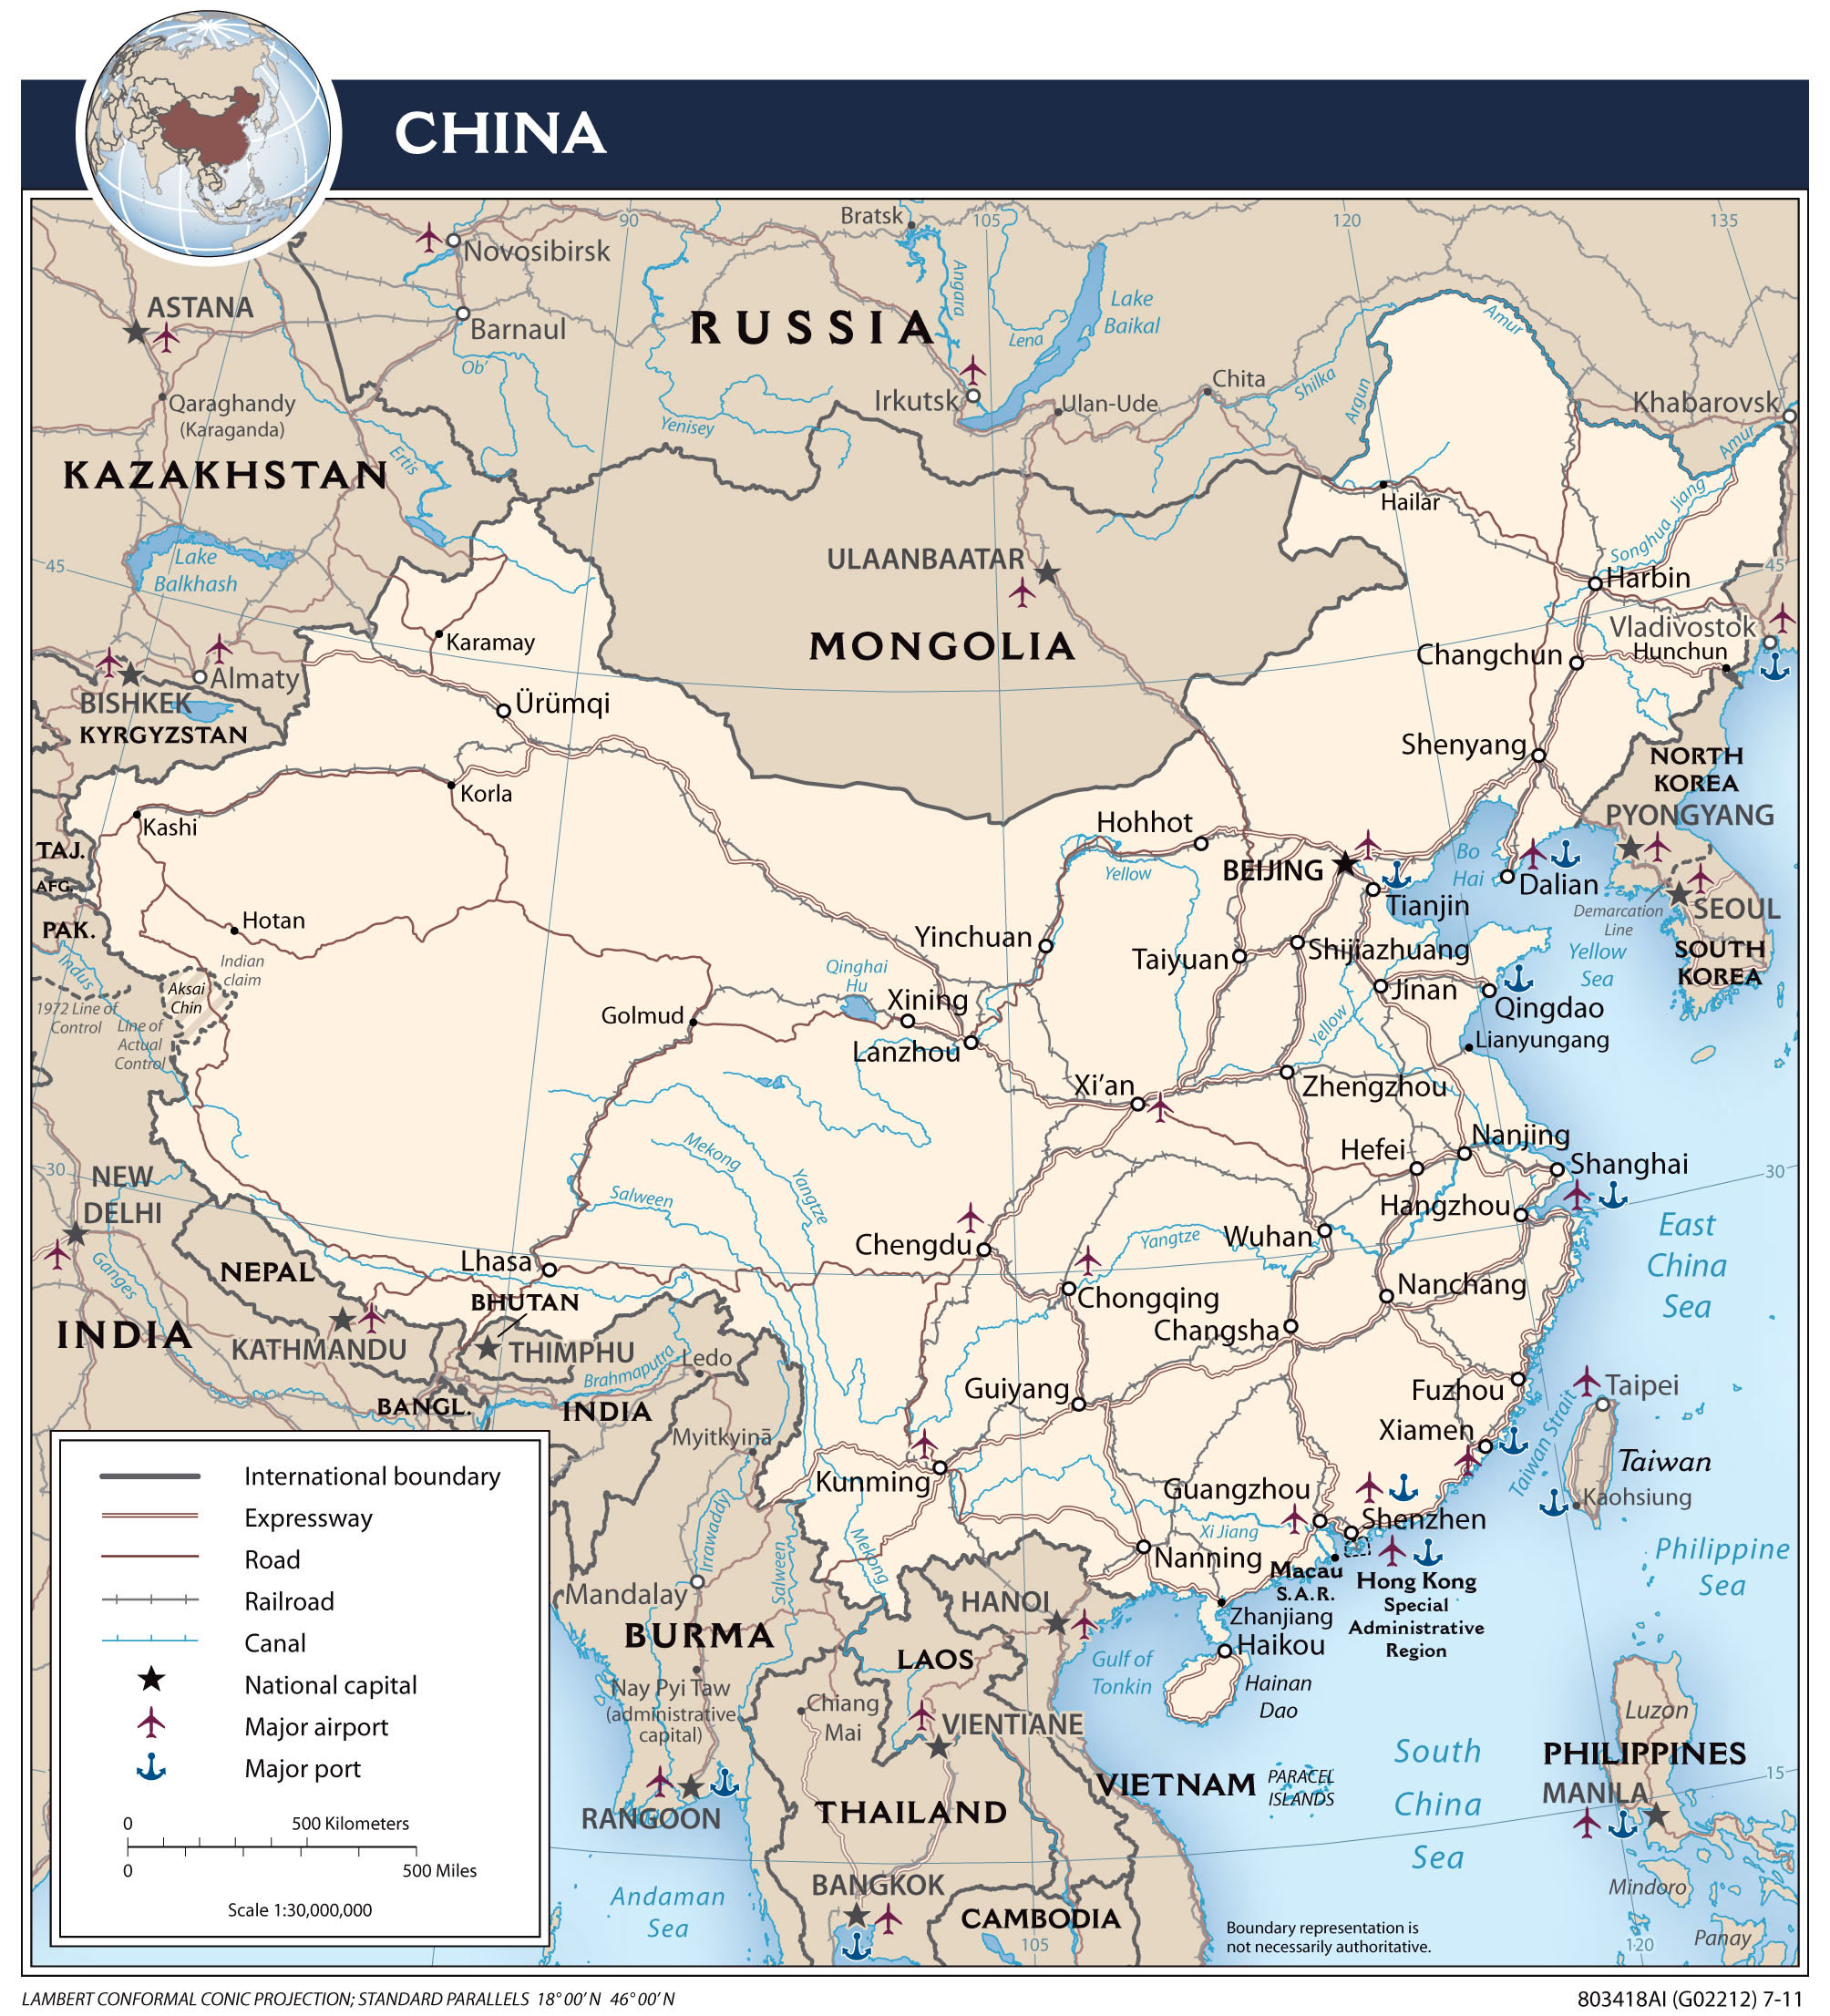 Large Detailed Political Map Of China With Roads